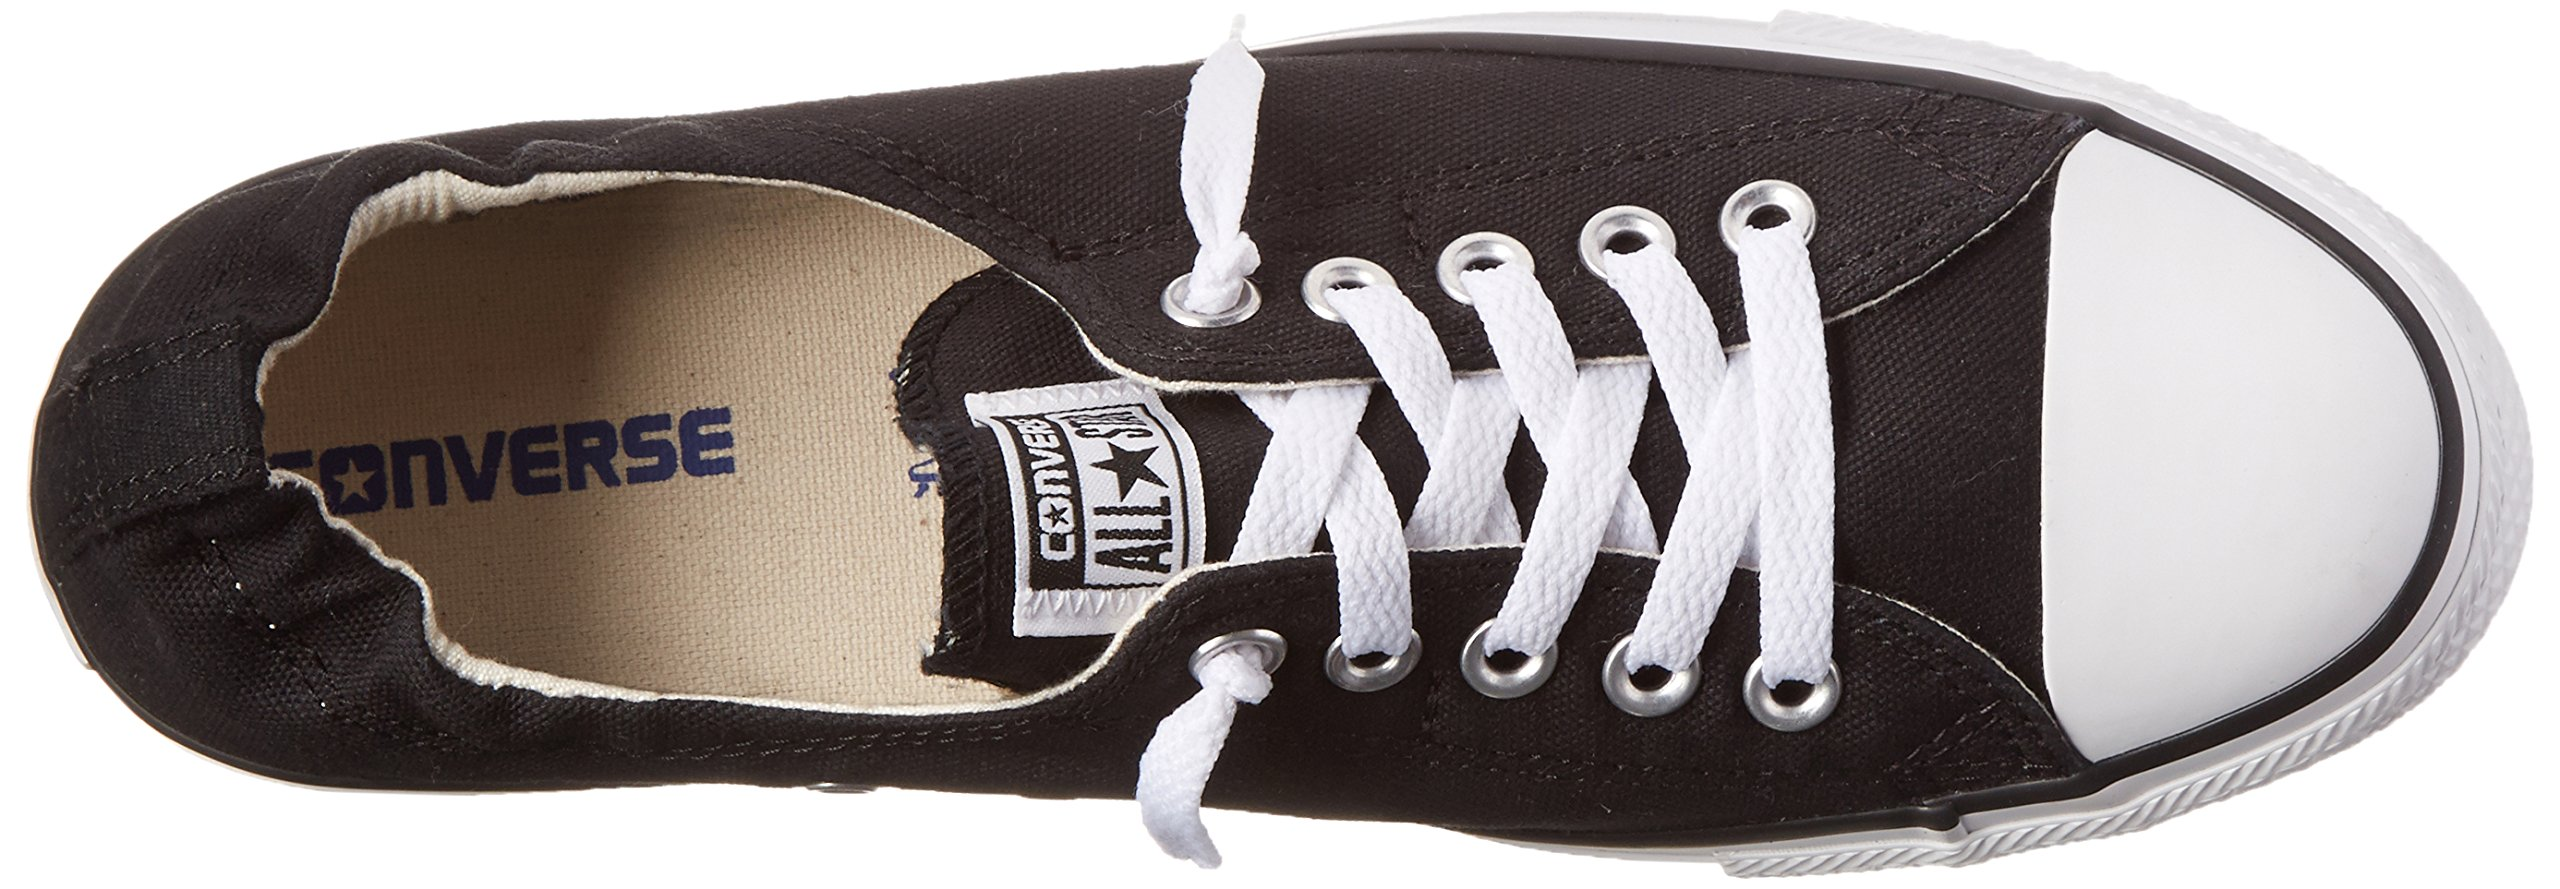 12233b86cee Converse Chuck Taylor All Star Shoreline Black Lace-Up Sneaker - 7 B(M) US  - 537081F-001-7 M US   Fashion Sneakers   Clothing